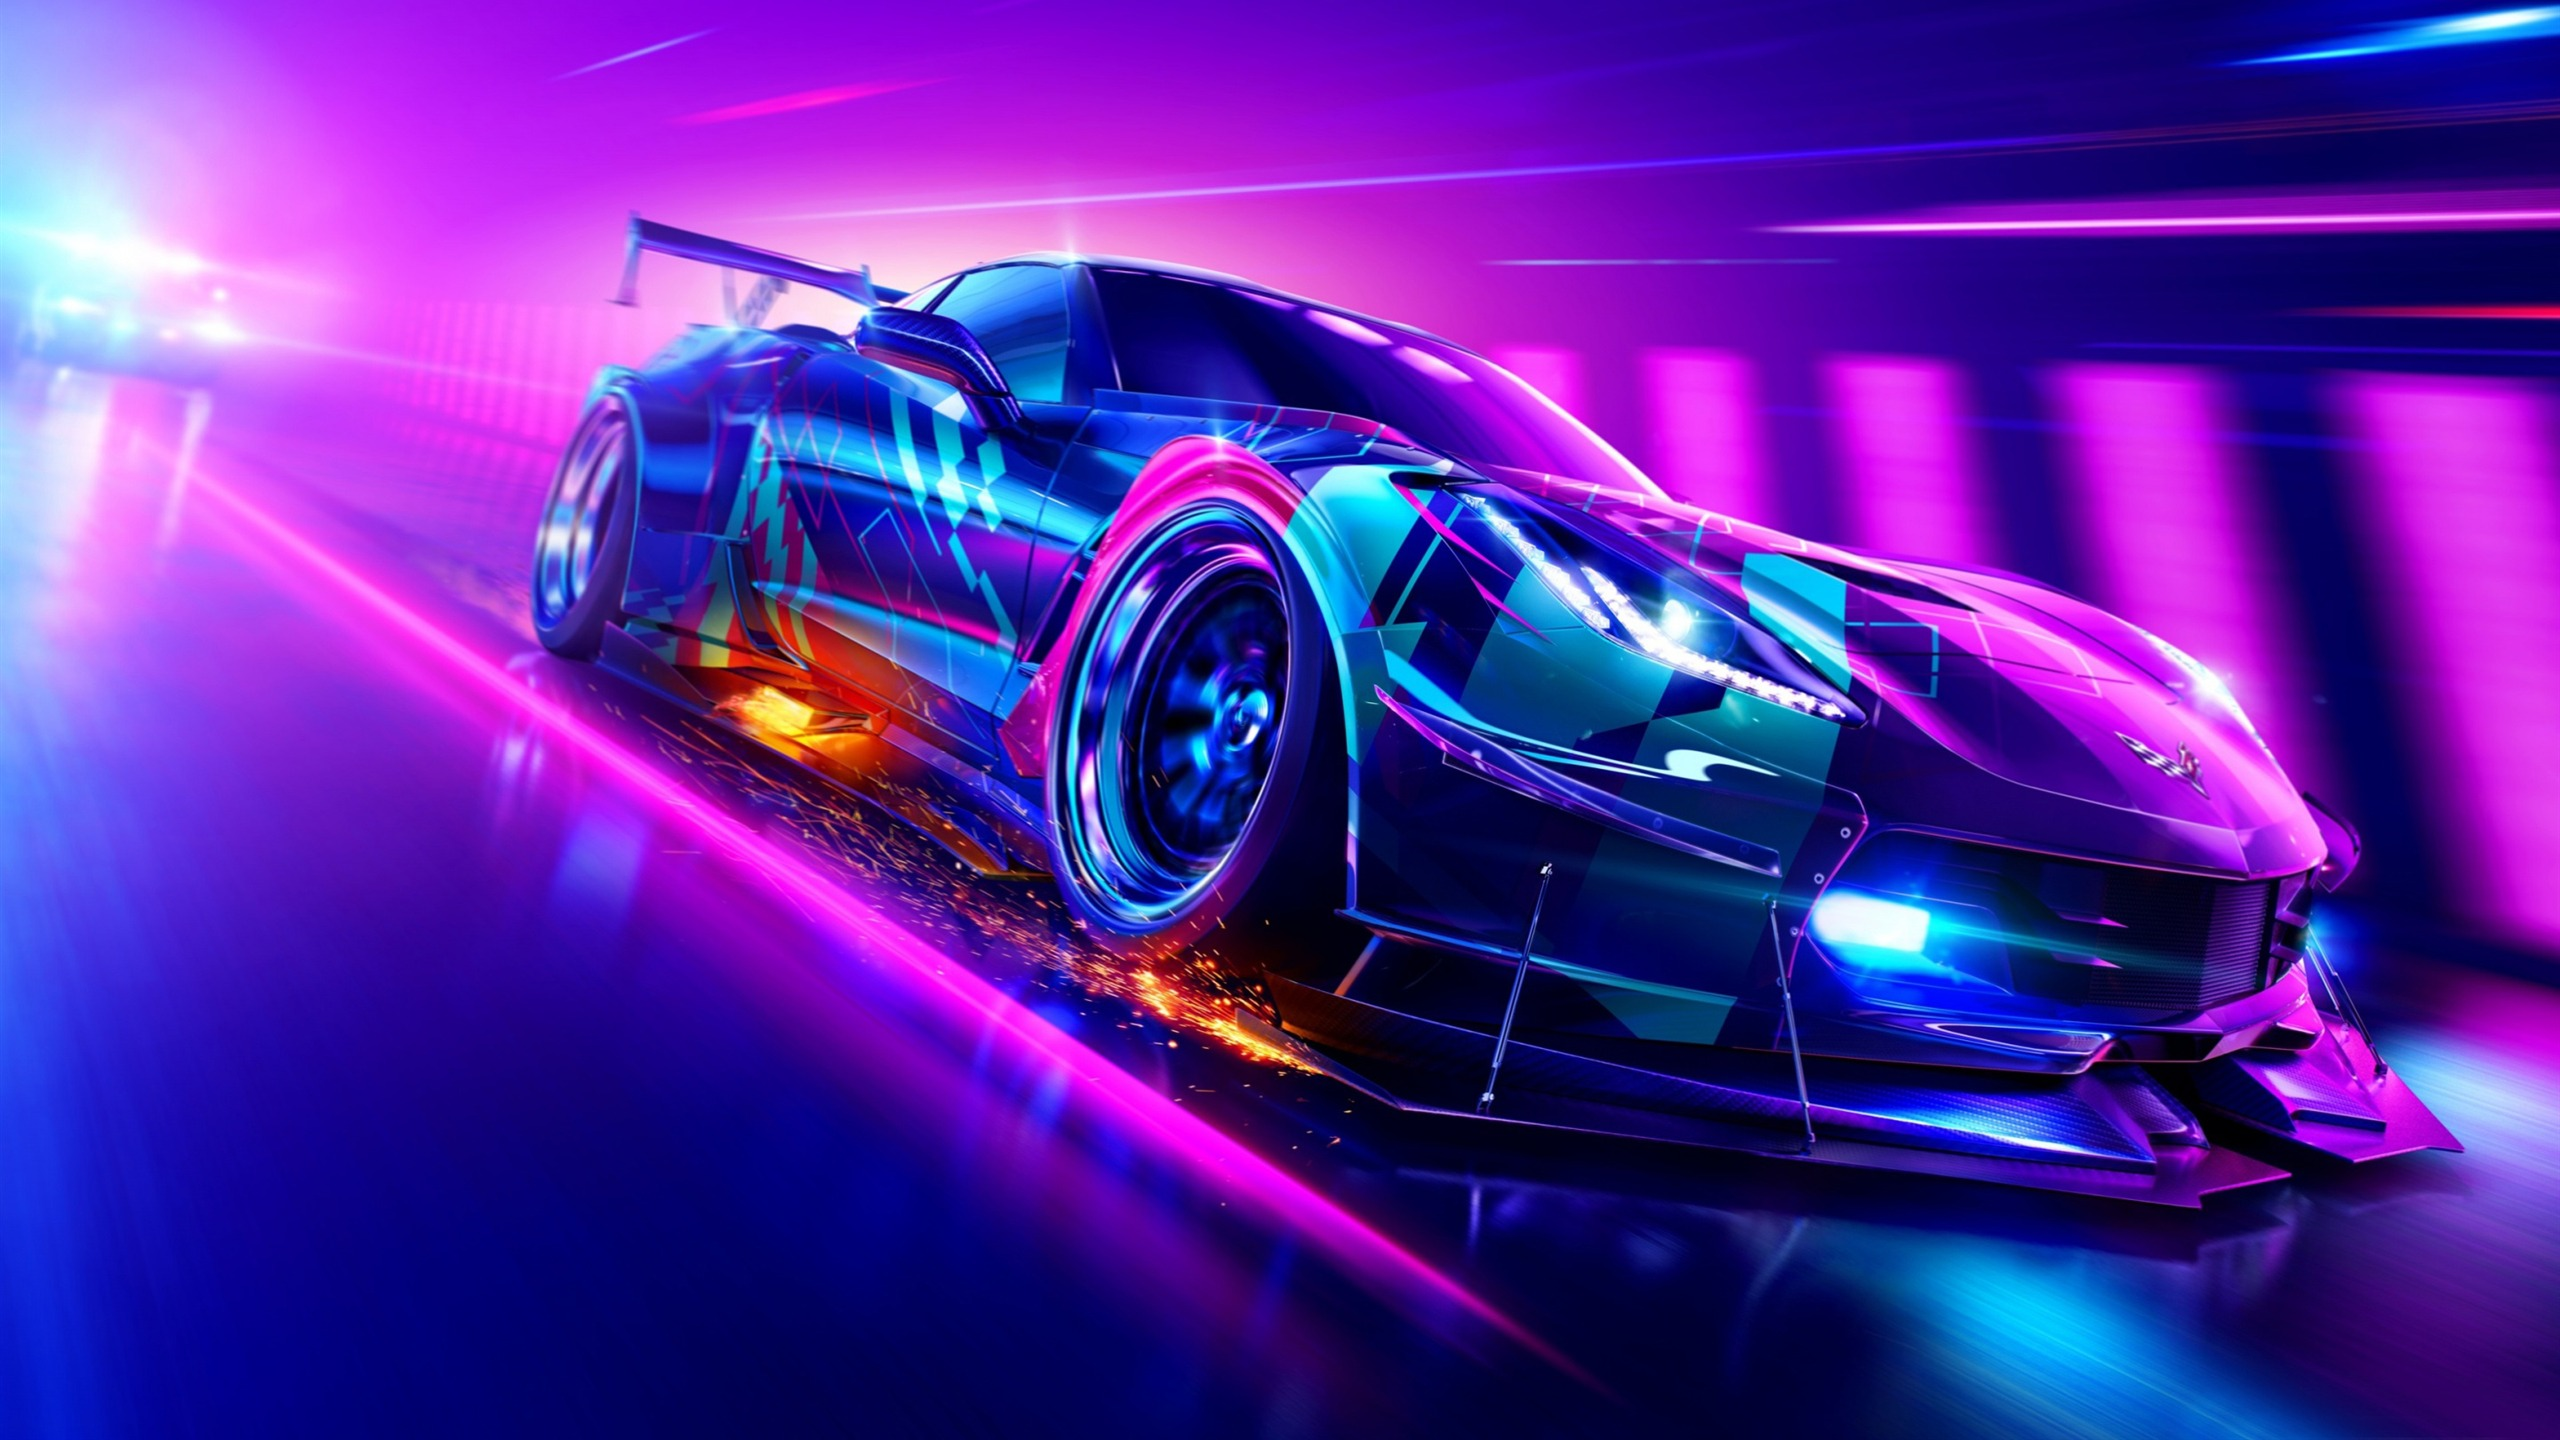 Need for Speed, Heat video, 2019, Game, HD, Poster Avance